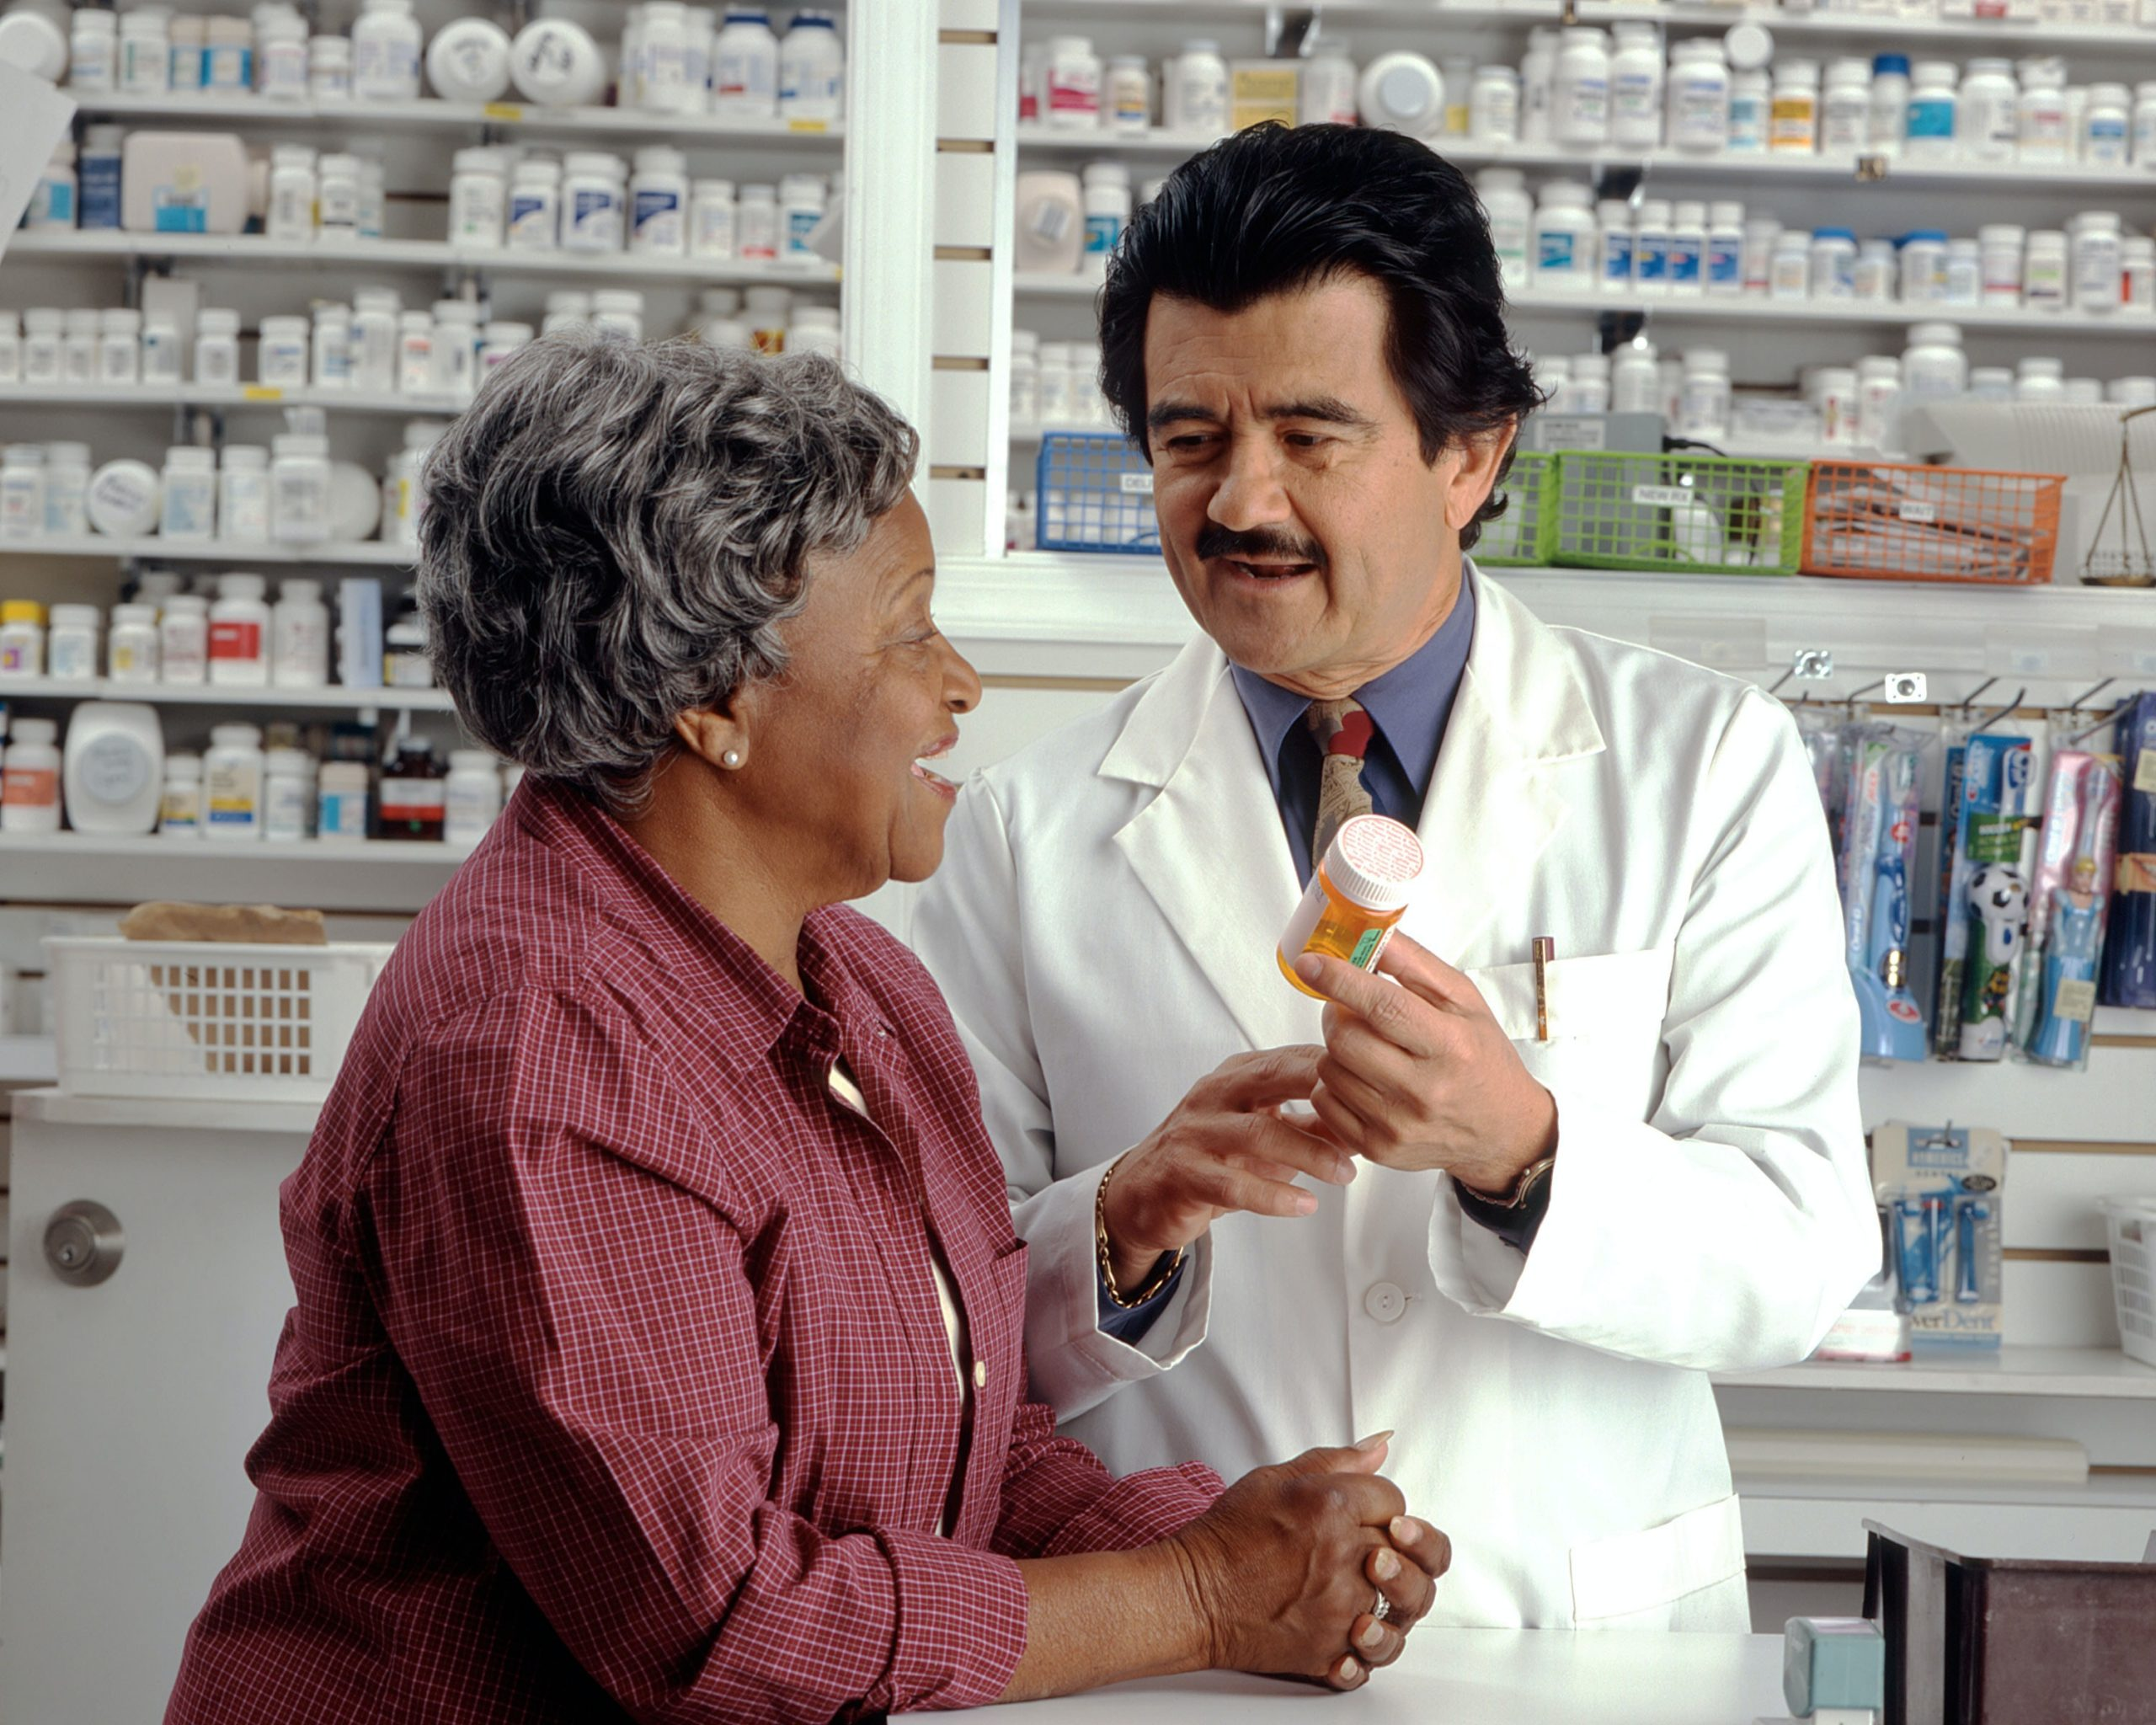 Pharmacist holding a bottle of tablets and talking to a customer